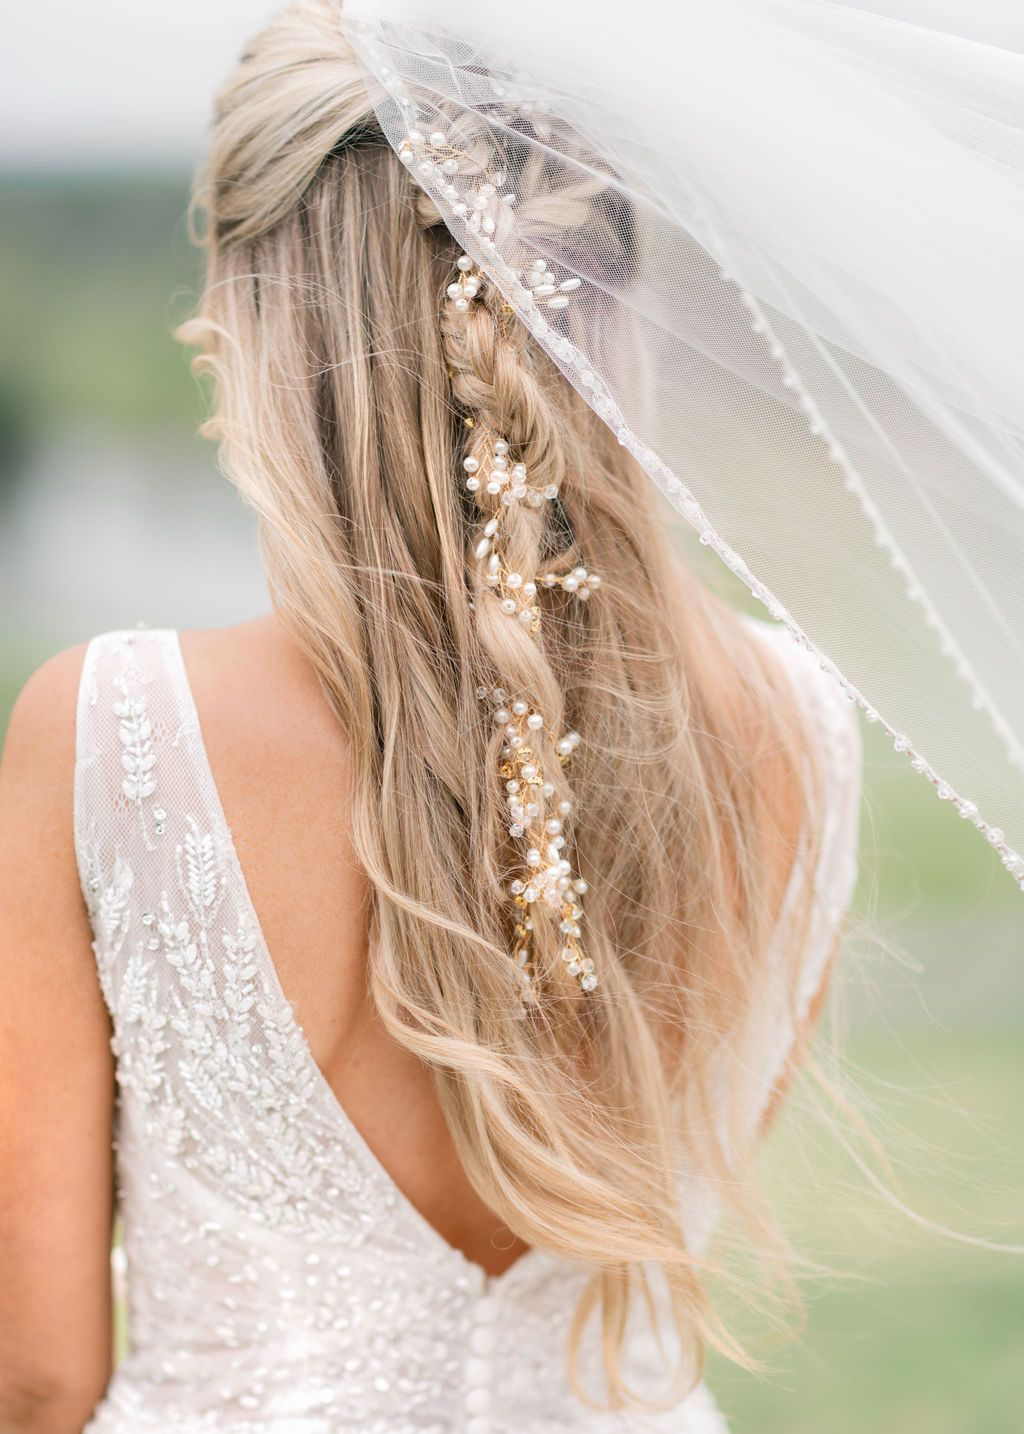 Romantic Spring Floral Filled Outdoor Wedding Inspiration At Stone Tower Winery Modwedding In 2020 Retro Wedding Hair Hair Accessories Crown Wedding Hairstyles Photos